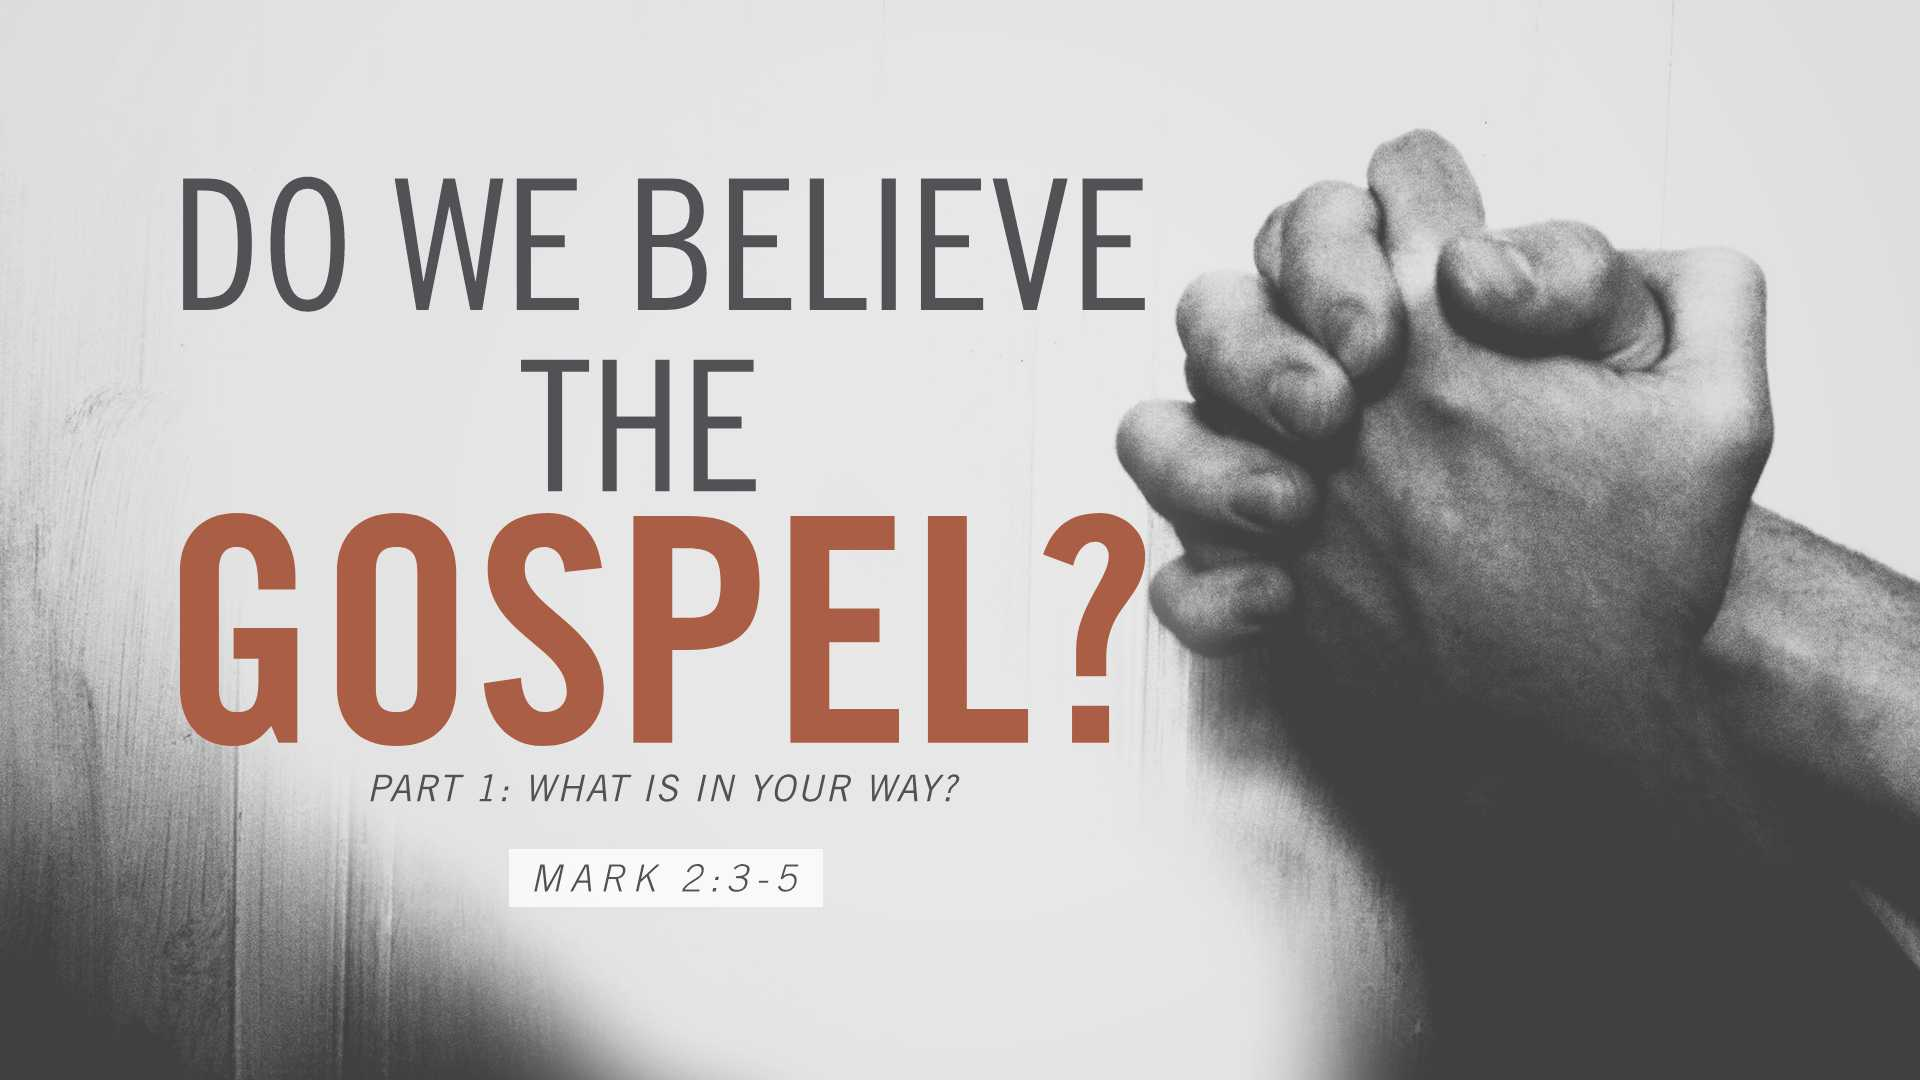 Do We Really Believe the Gospel